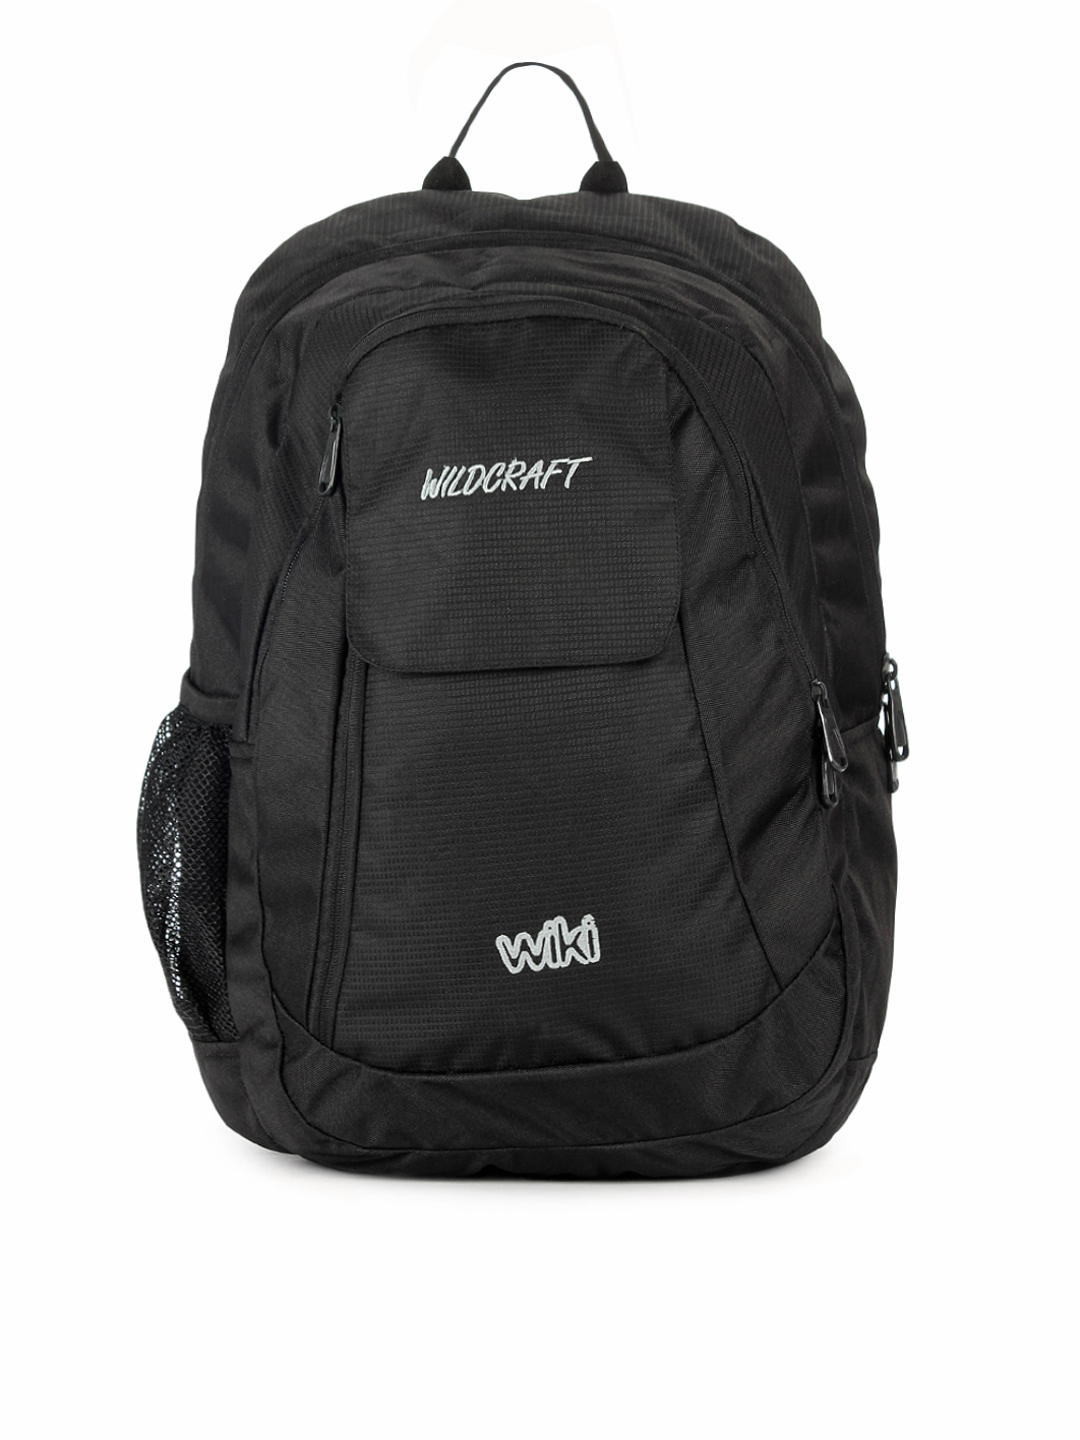 Wildcraft  Unisex Polyester Black Backpack